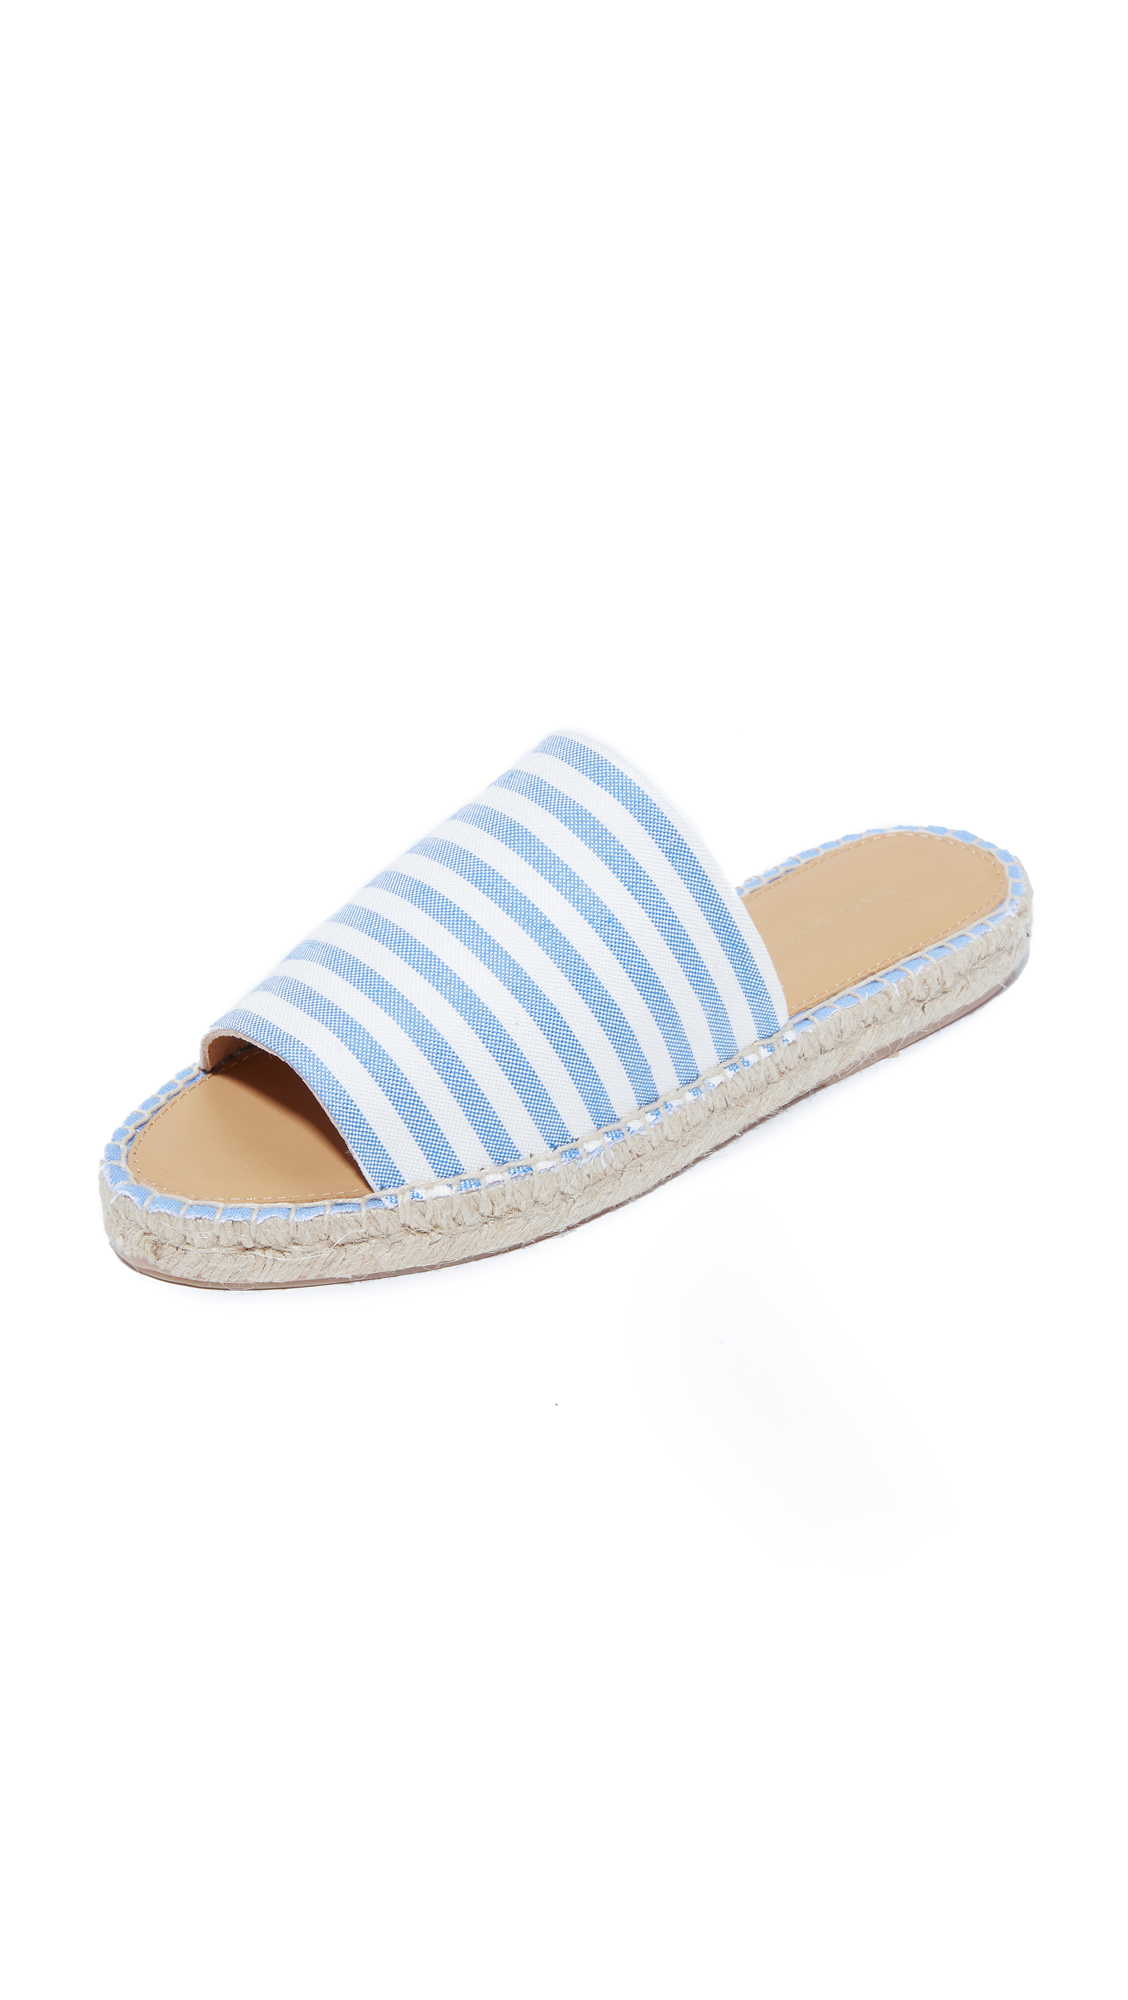 Matt Bernson Palma Slides - Sky Blue/White Stripe